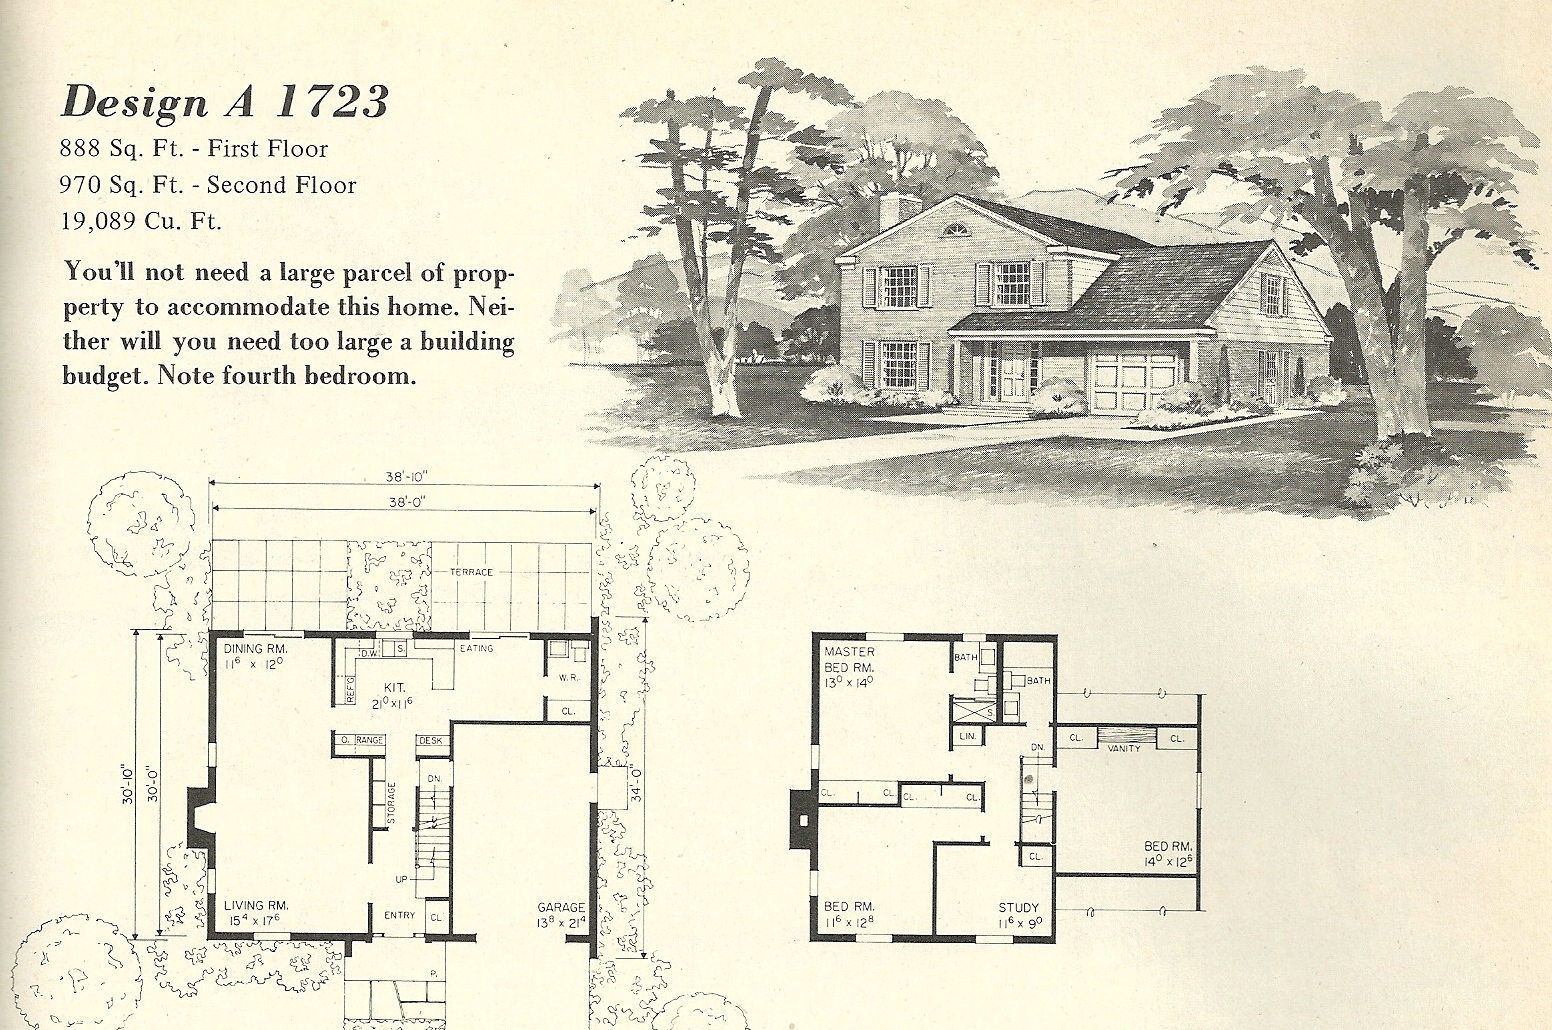 Vintage house plans 1723 antique alter ego for Vintage home plans